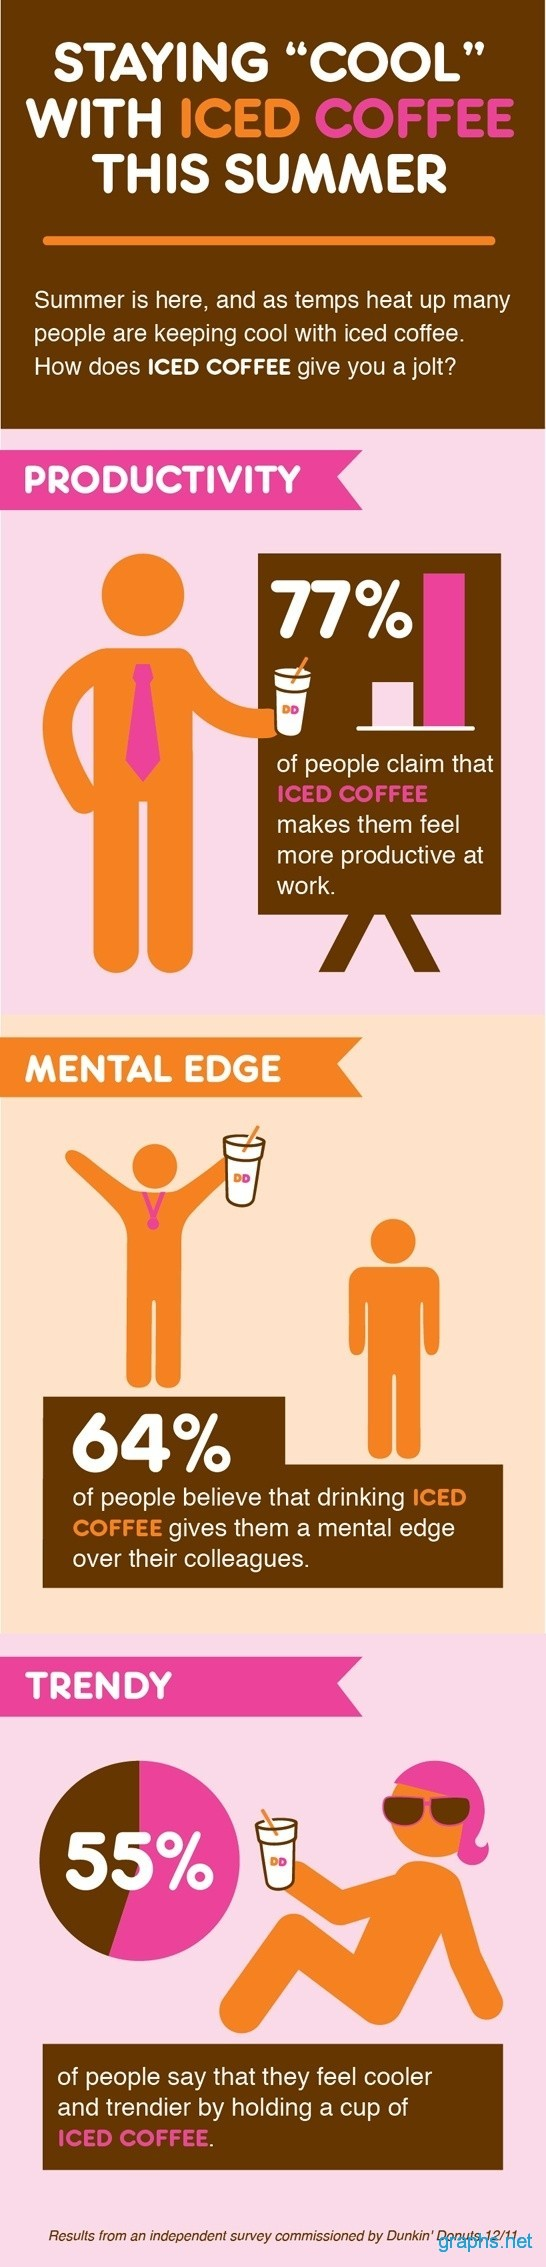 Benefits of Drinking ICED Coffee